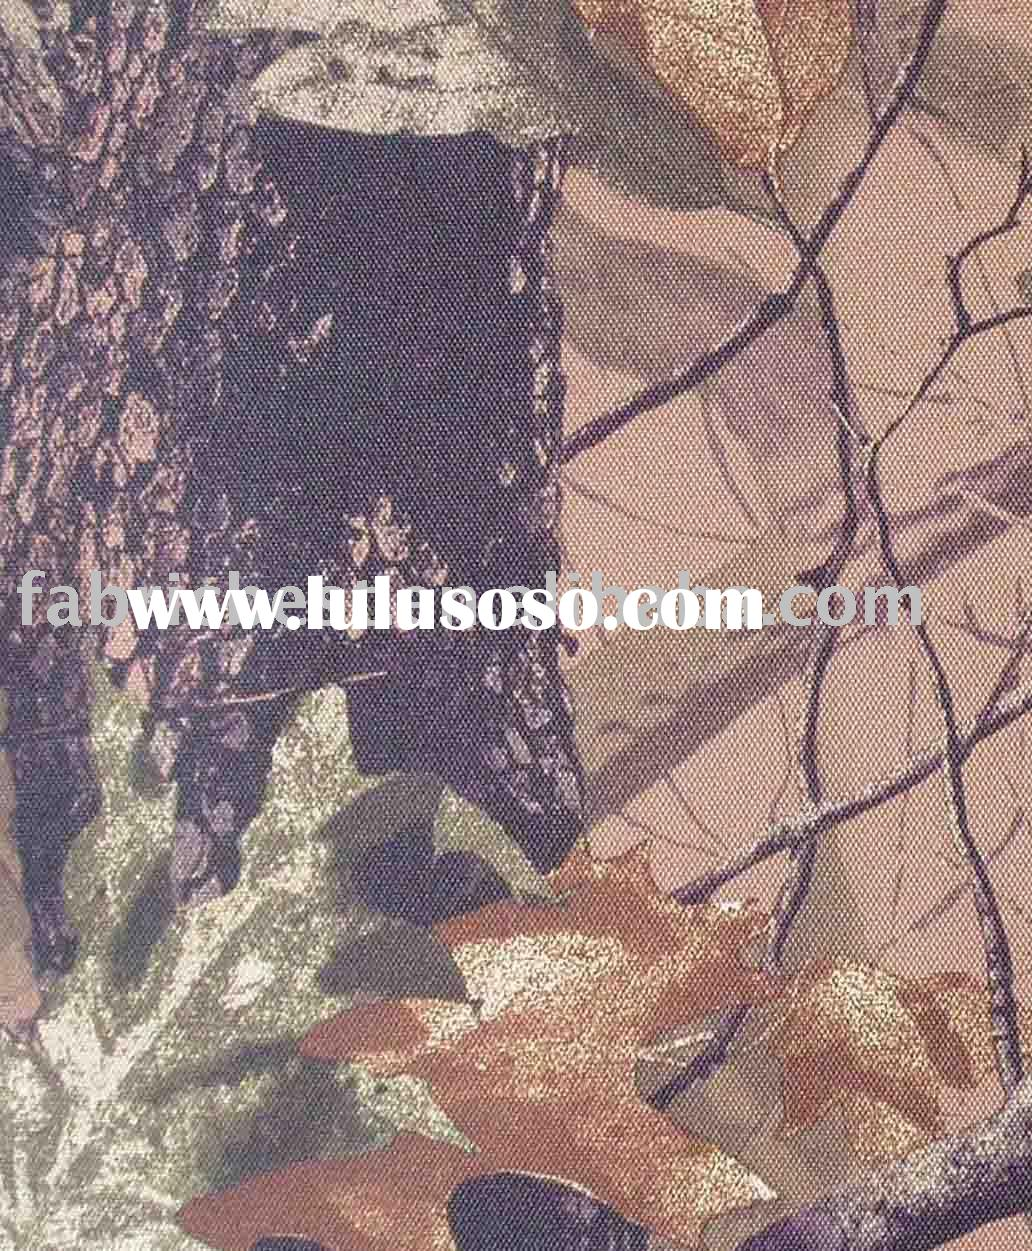 Sell Polyester Tent Fabric And Pavillion Coated Oxford Fabric